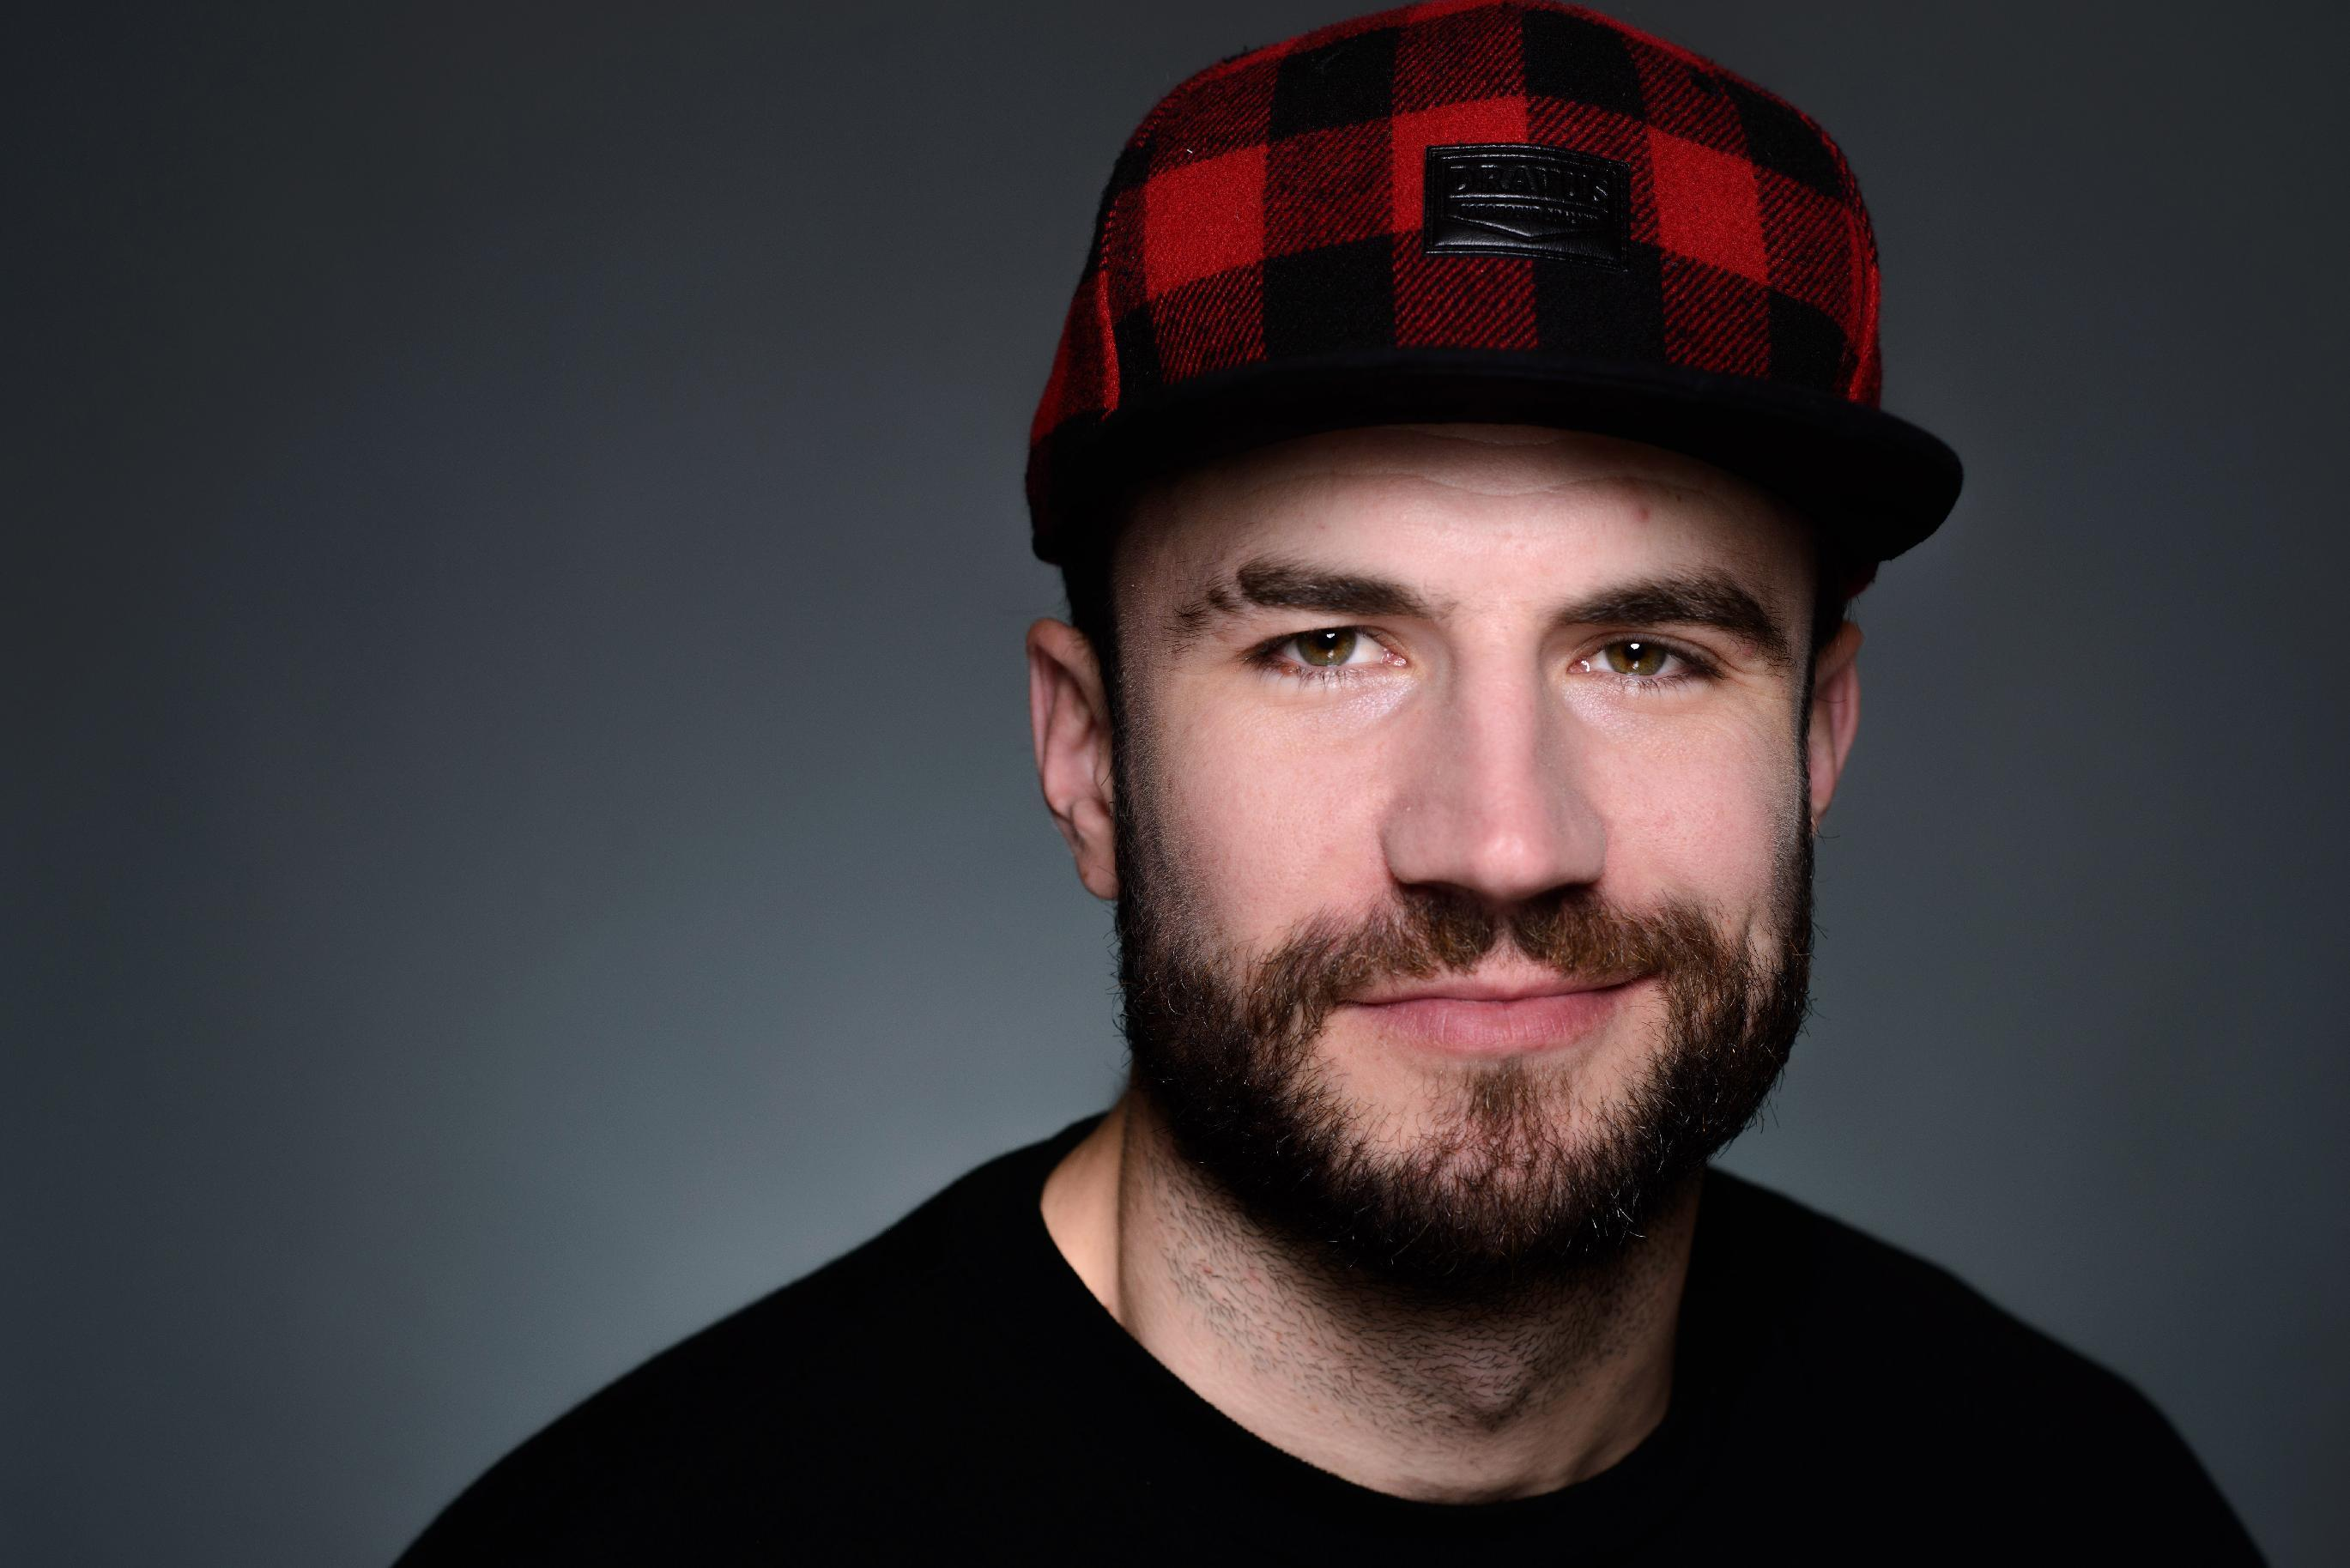 Singer Sam Hunt rising in both country and pop worlds